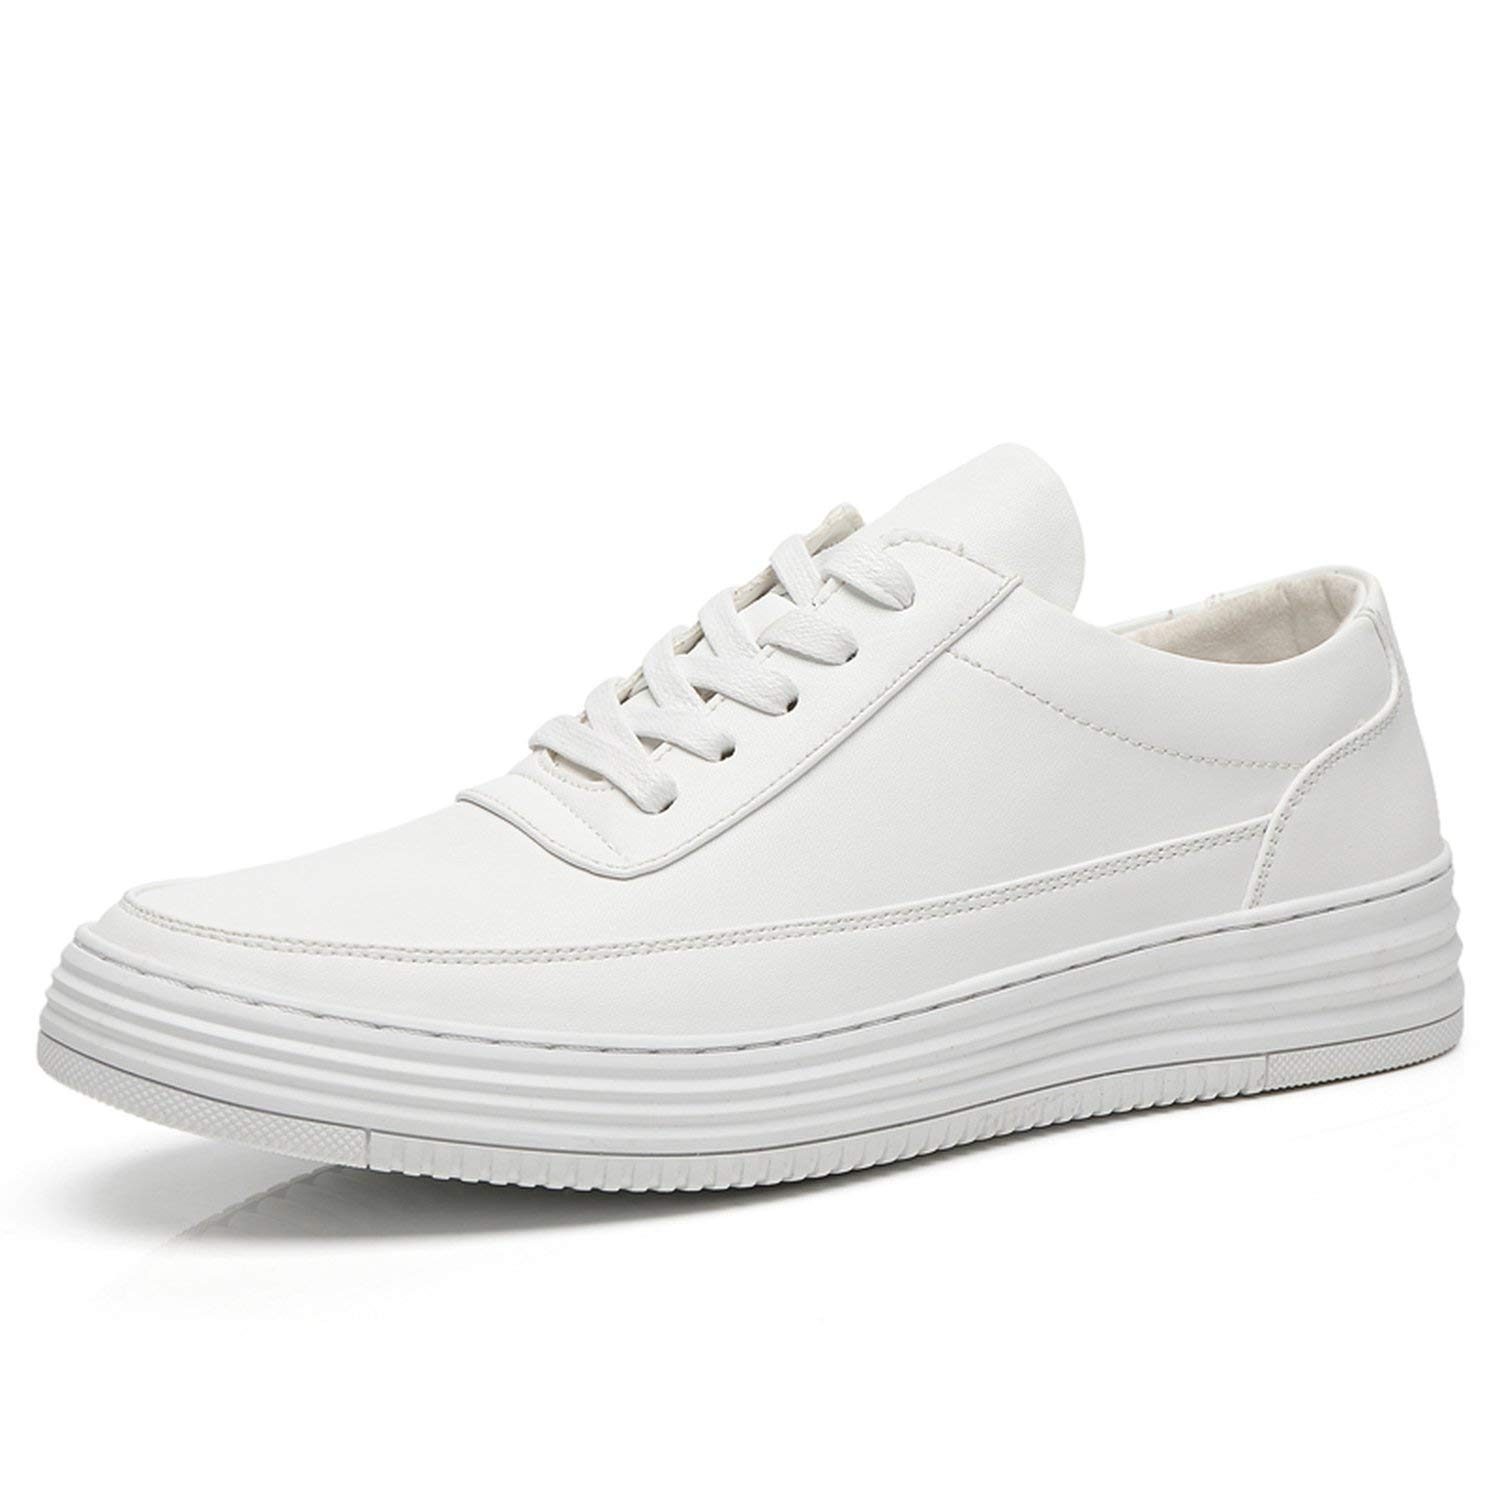 19161 2019 Summer Men's shoes Comfortable Small White shoes Personality Joker Sports shoes Casual Sneakers